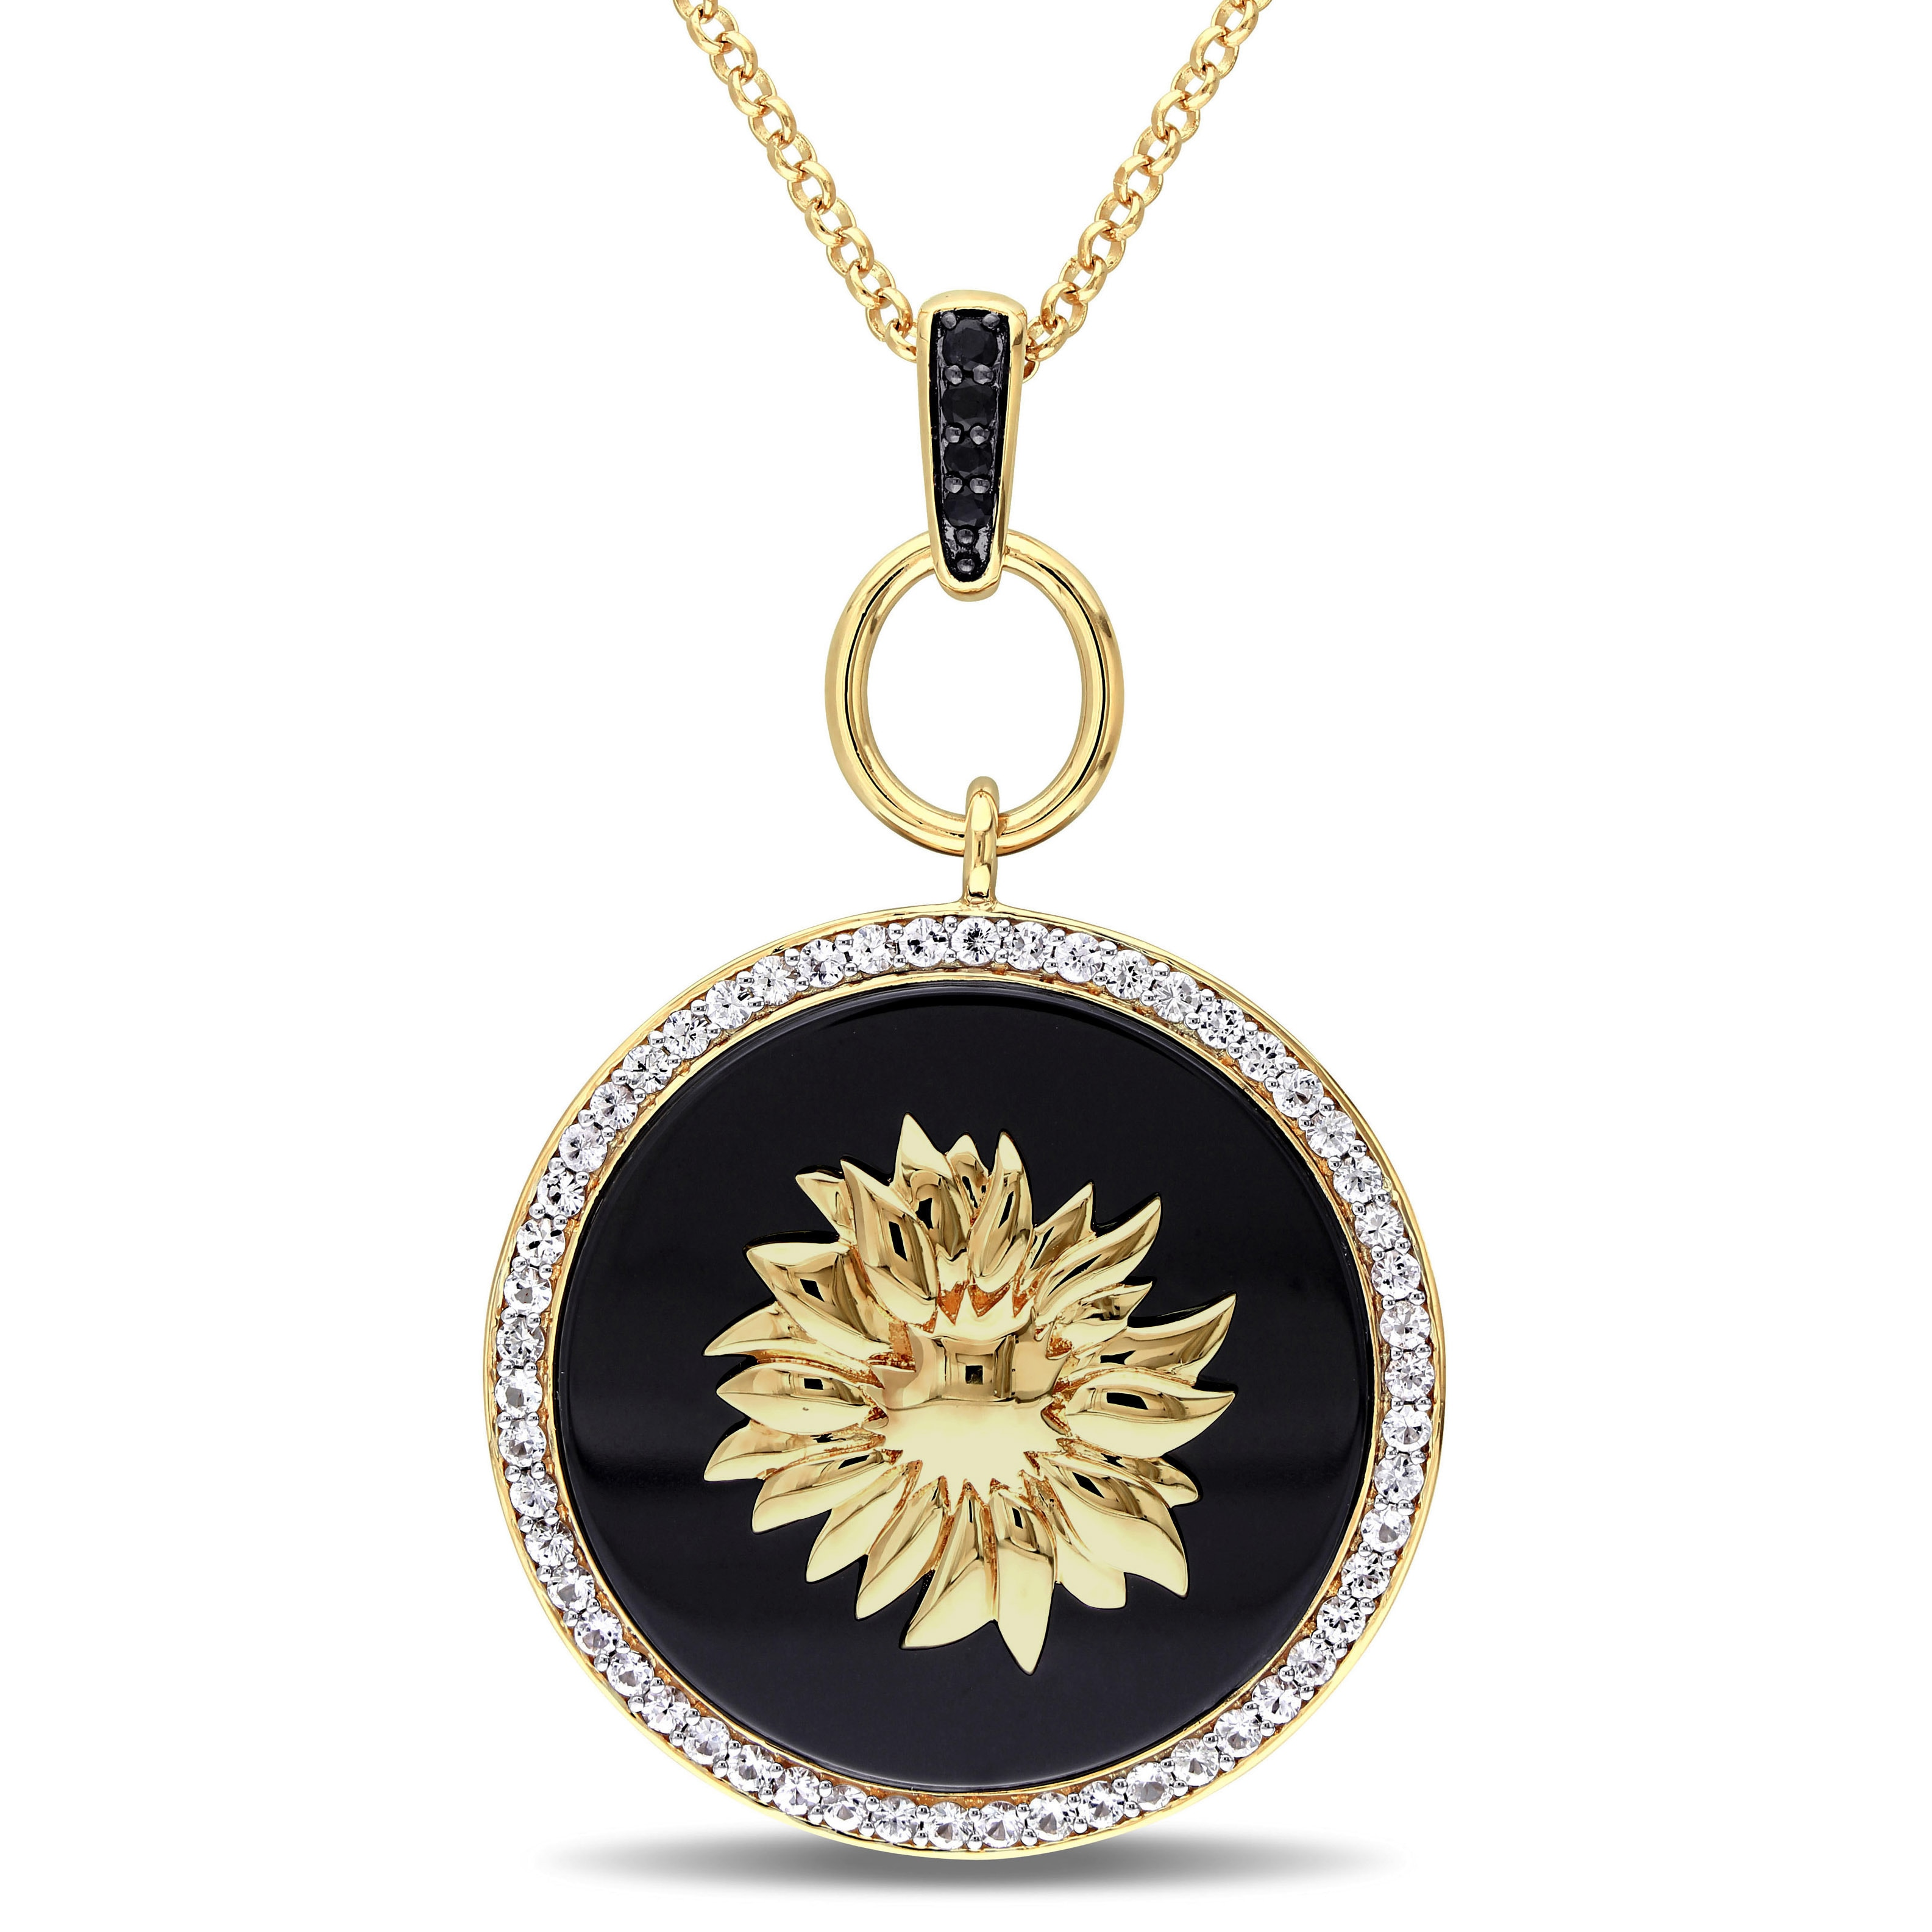 V1969 italia black agate white and black sapphire sunflower necklace v1969 italia black agate white and black sapphire sunflower necklace in yellow gold plated sterl free shipping today overstock 18899998 aloadofball Image collections